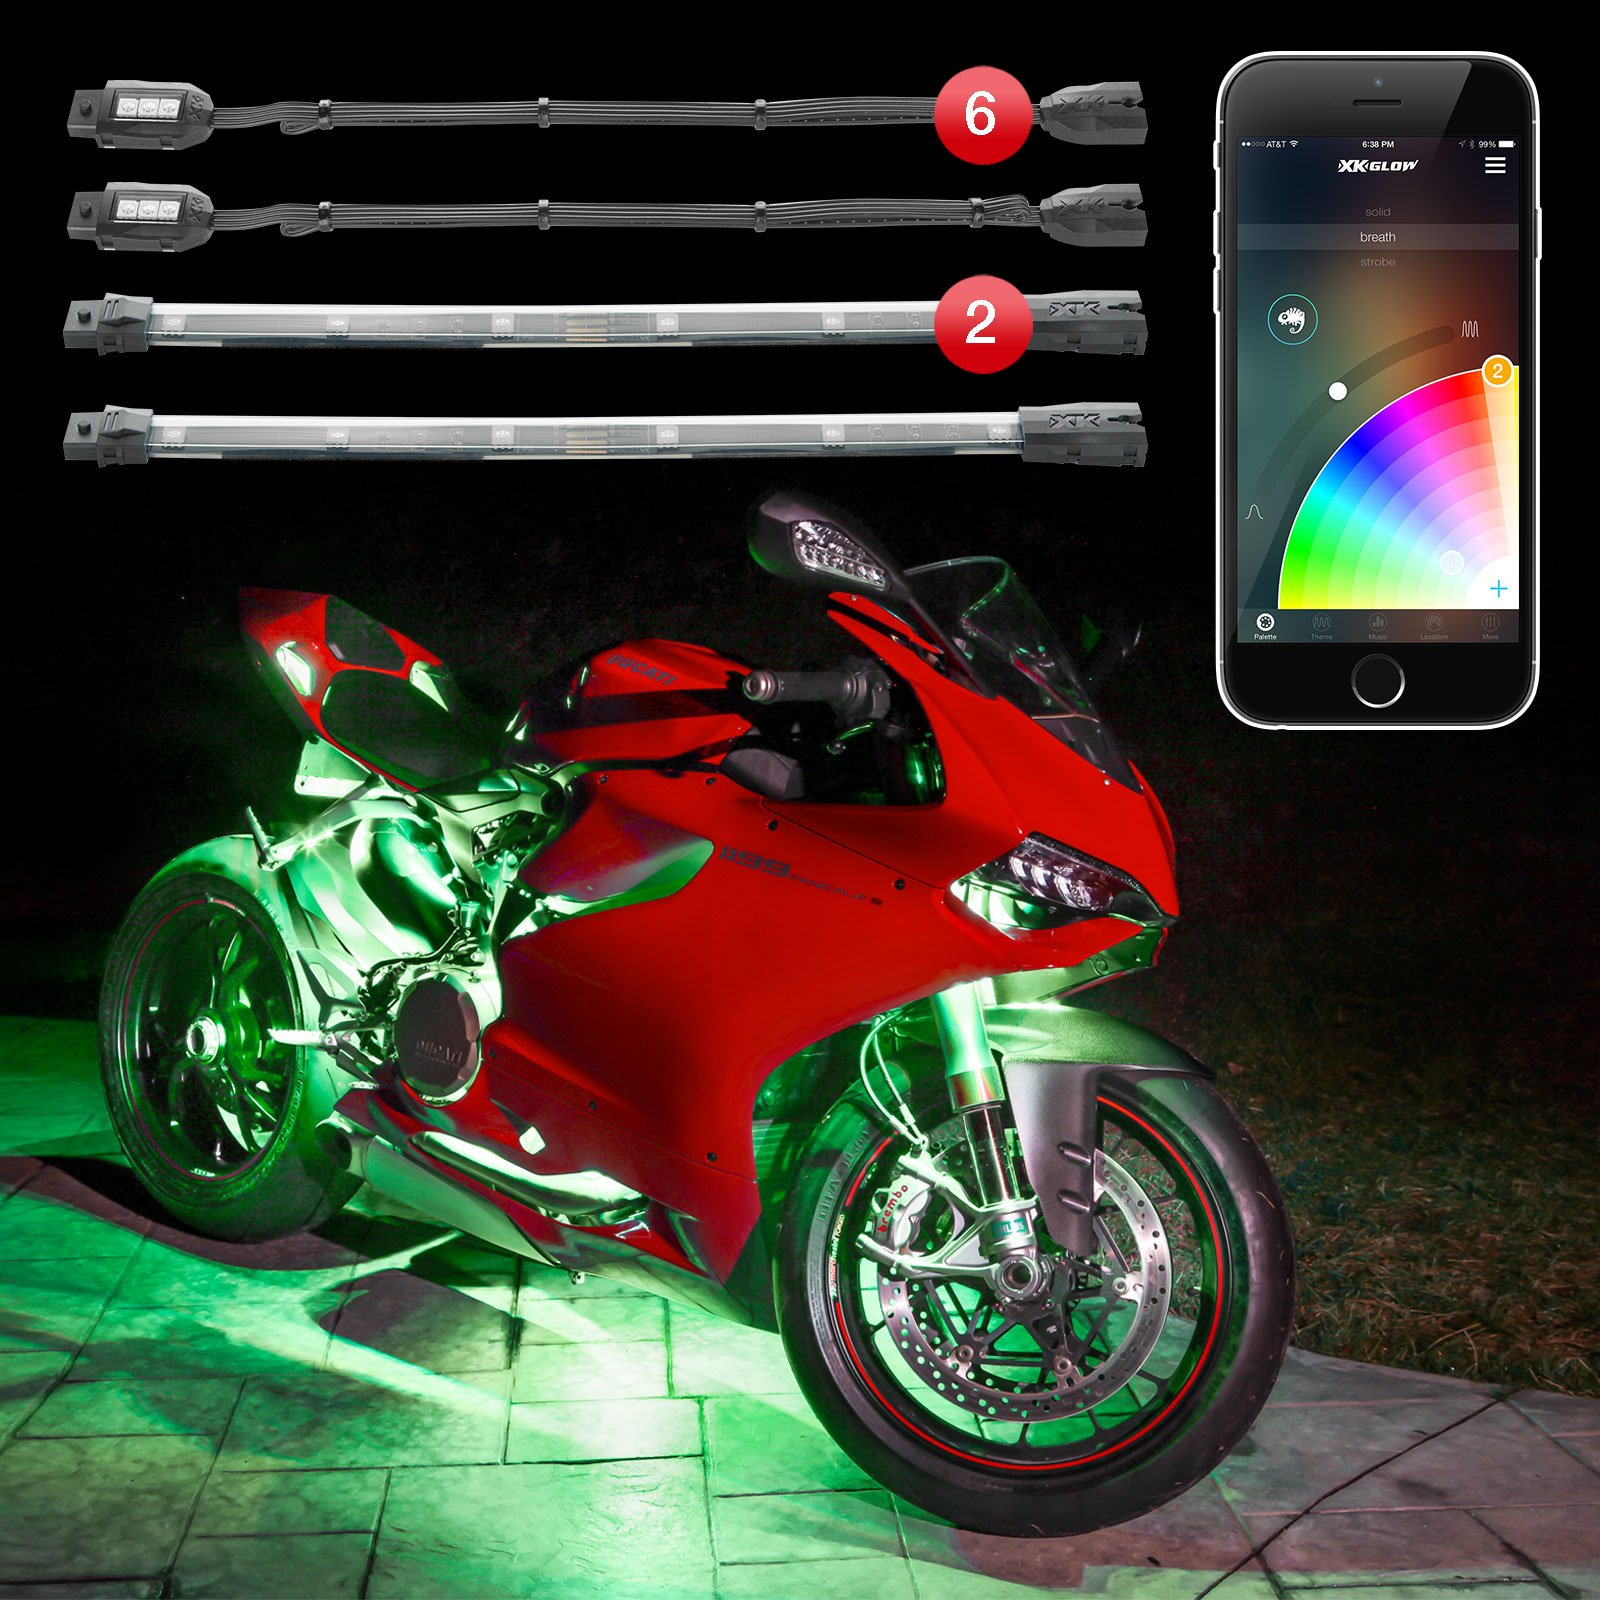 2nd Gen 6pc Pods 2pc Strips XKchrome App Control Motorcycle LED Light Kit Millions of Colors Patterns Music Sync Smart Brake Feature for Harley Honda Yamaha Suzuki Kawasaki Ducati Indian Victory